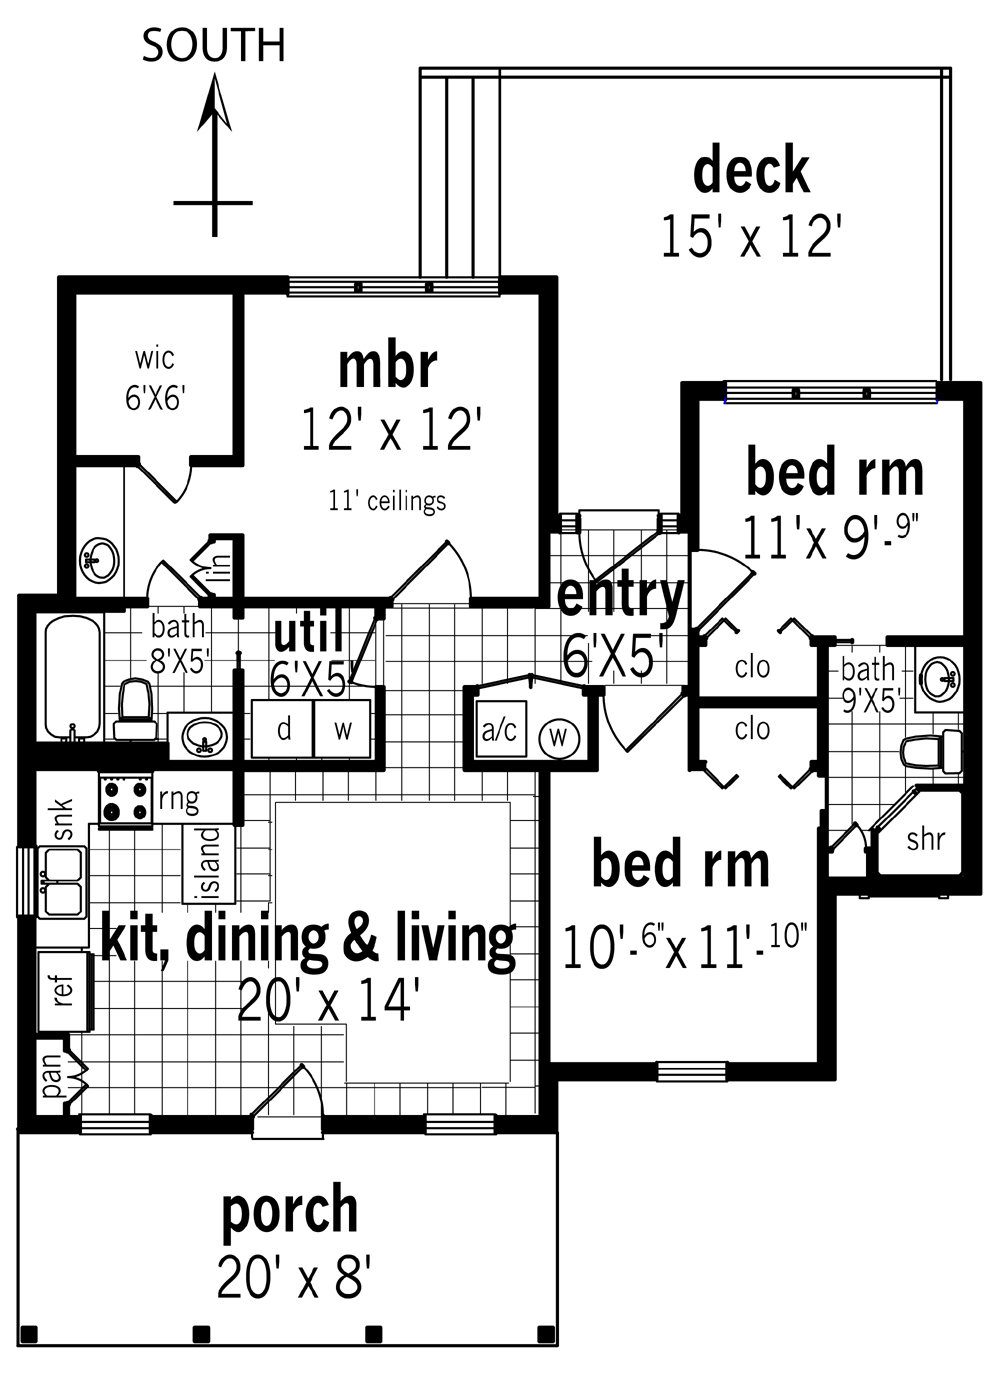 floor plan - Home Design Floor Plans Free